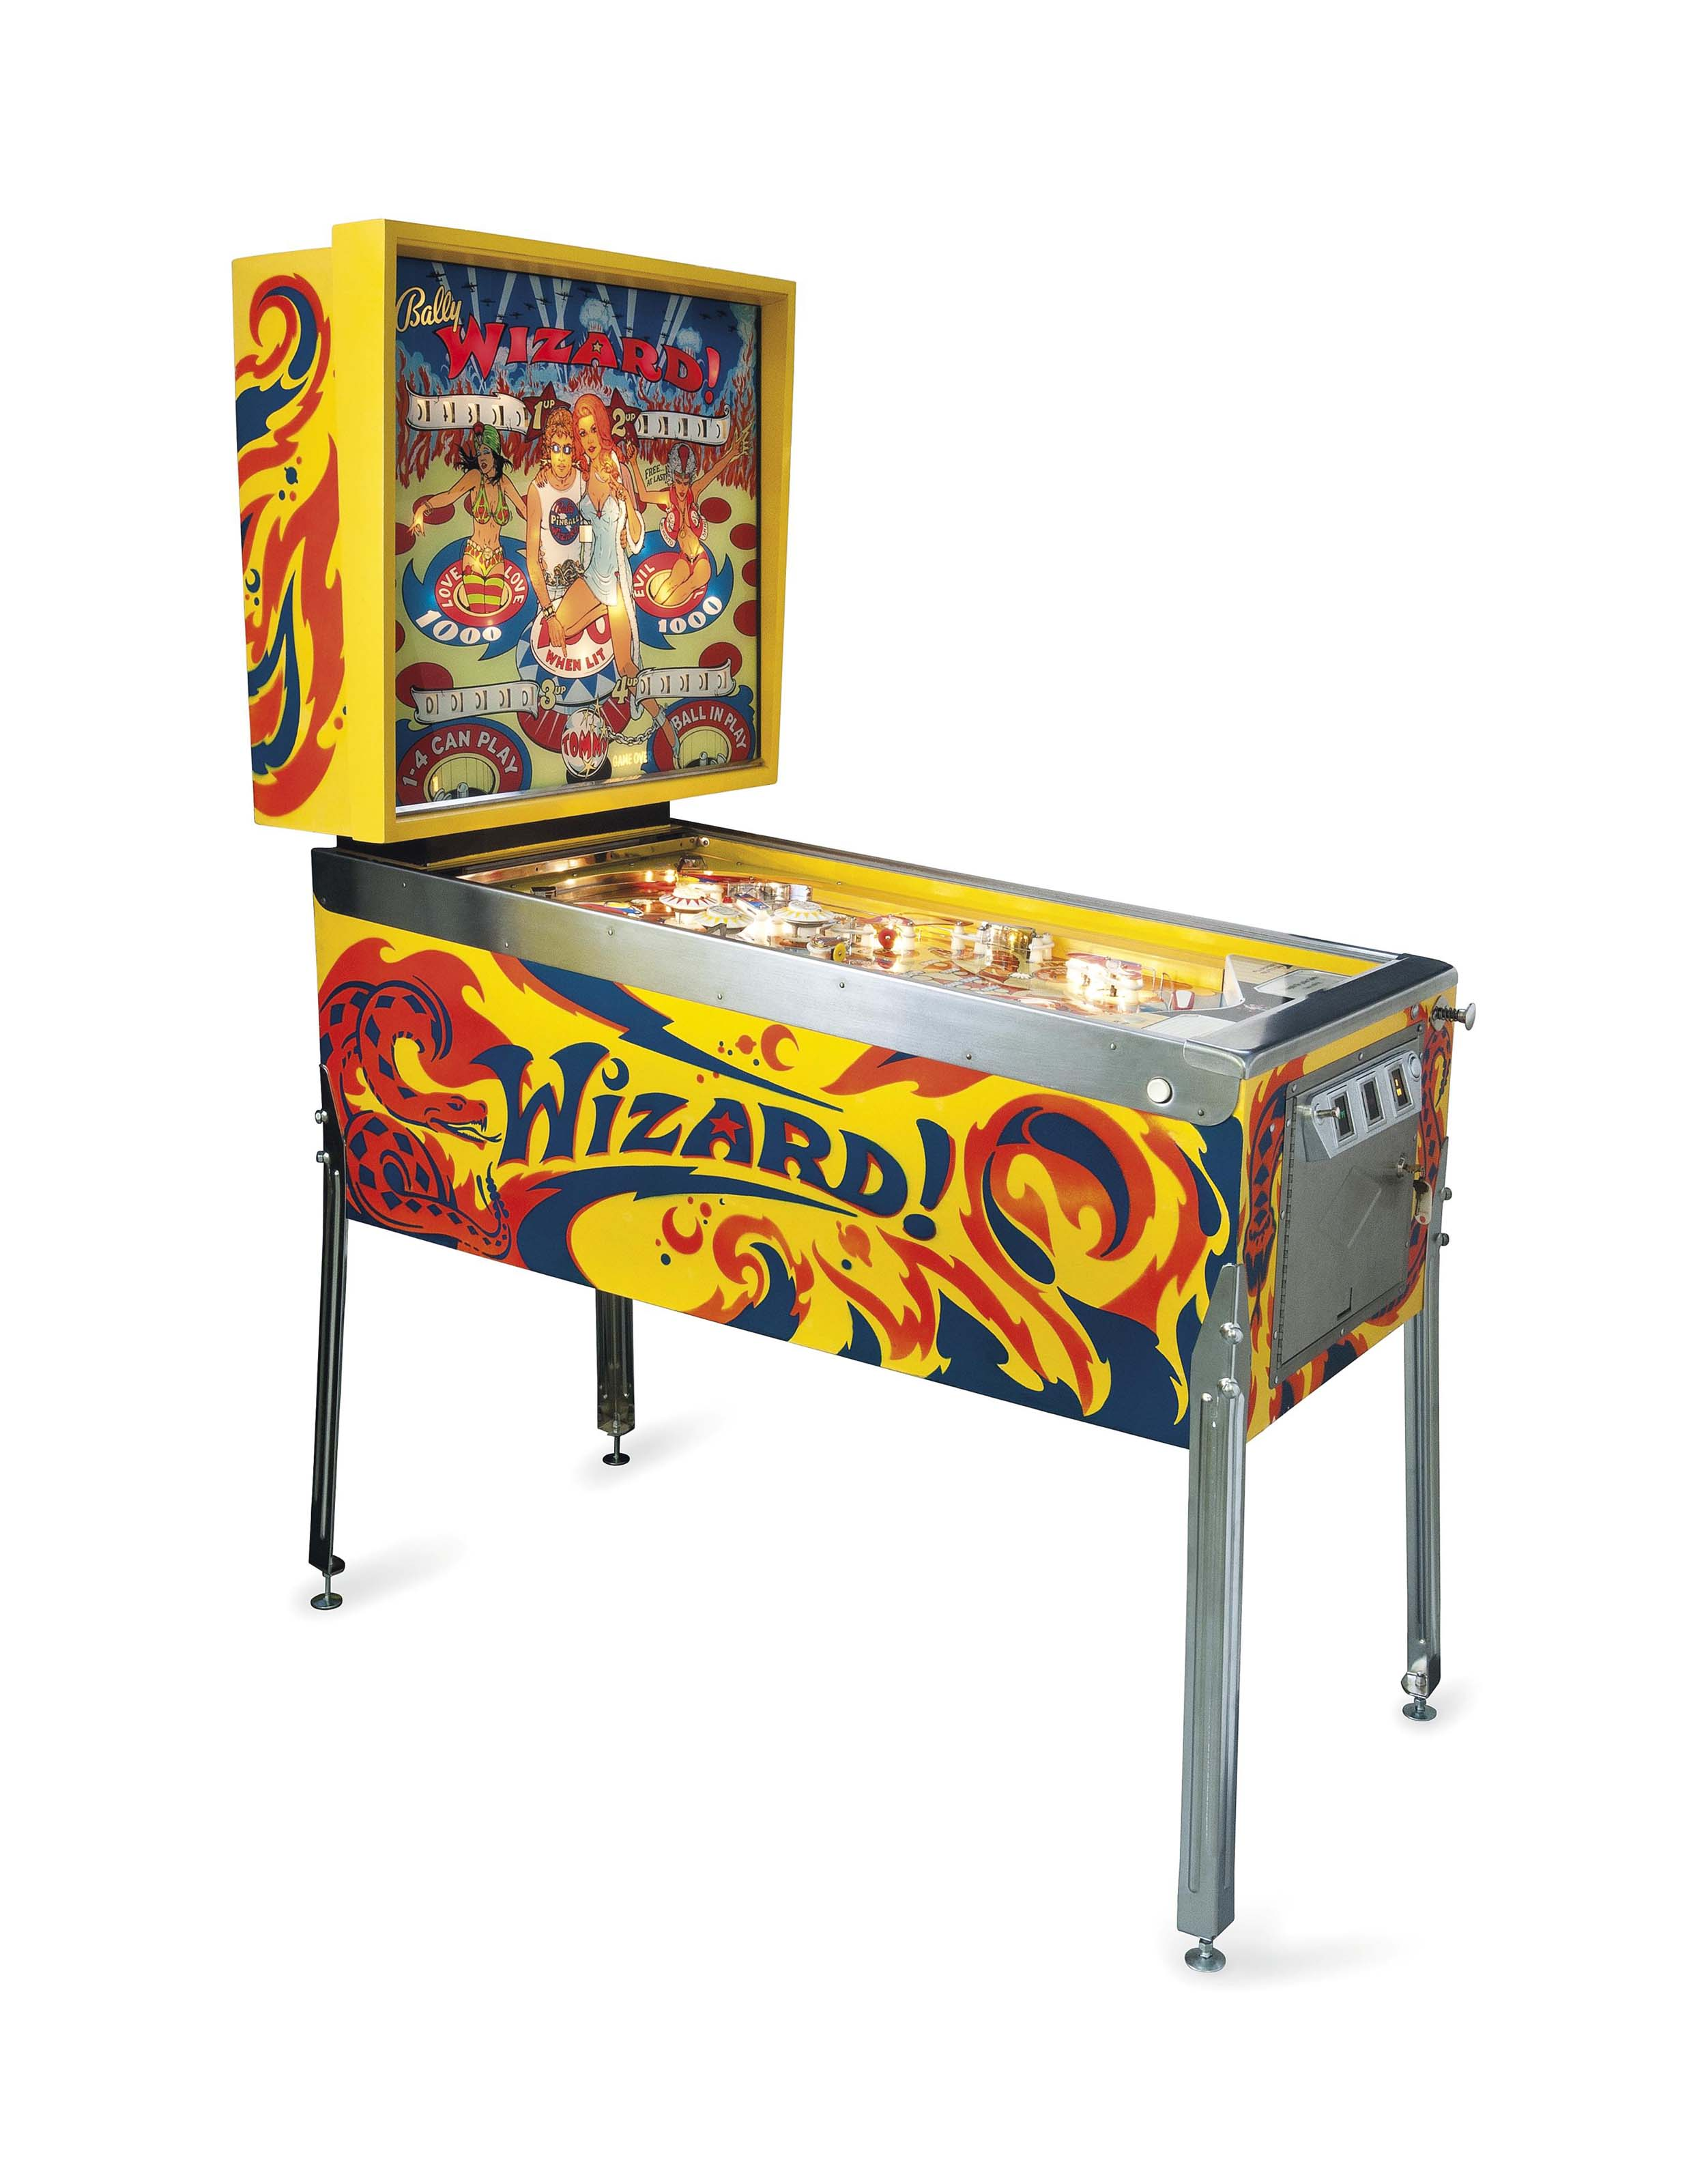 Wizzard Pinball Machine Hire